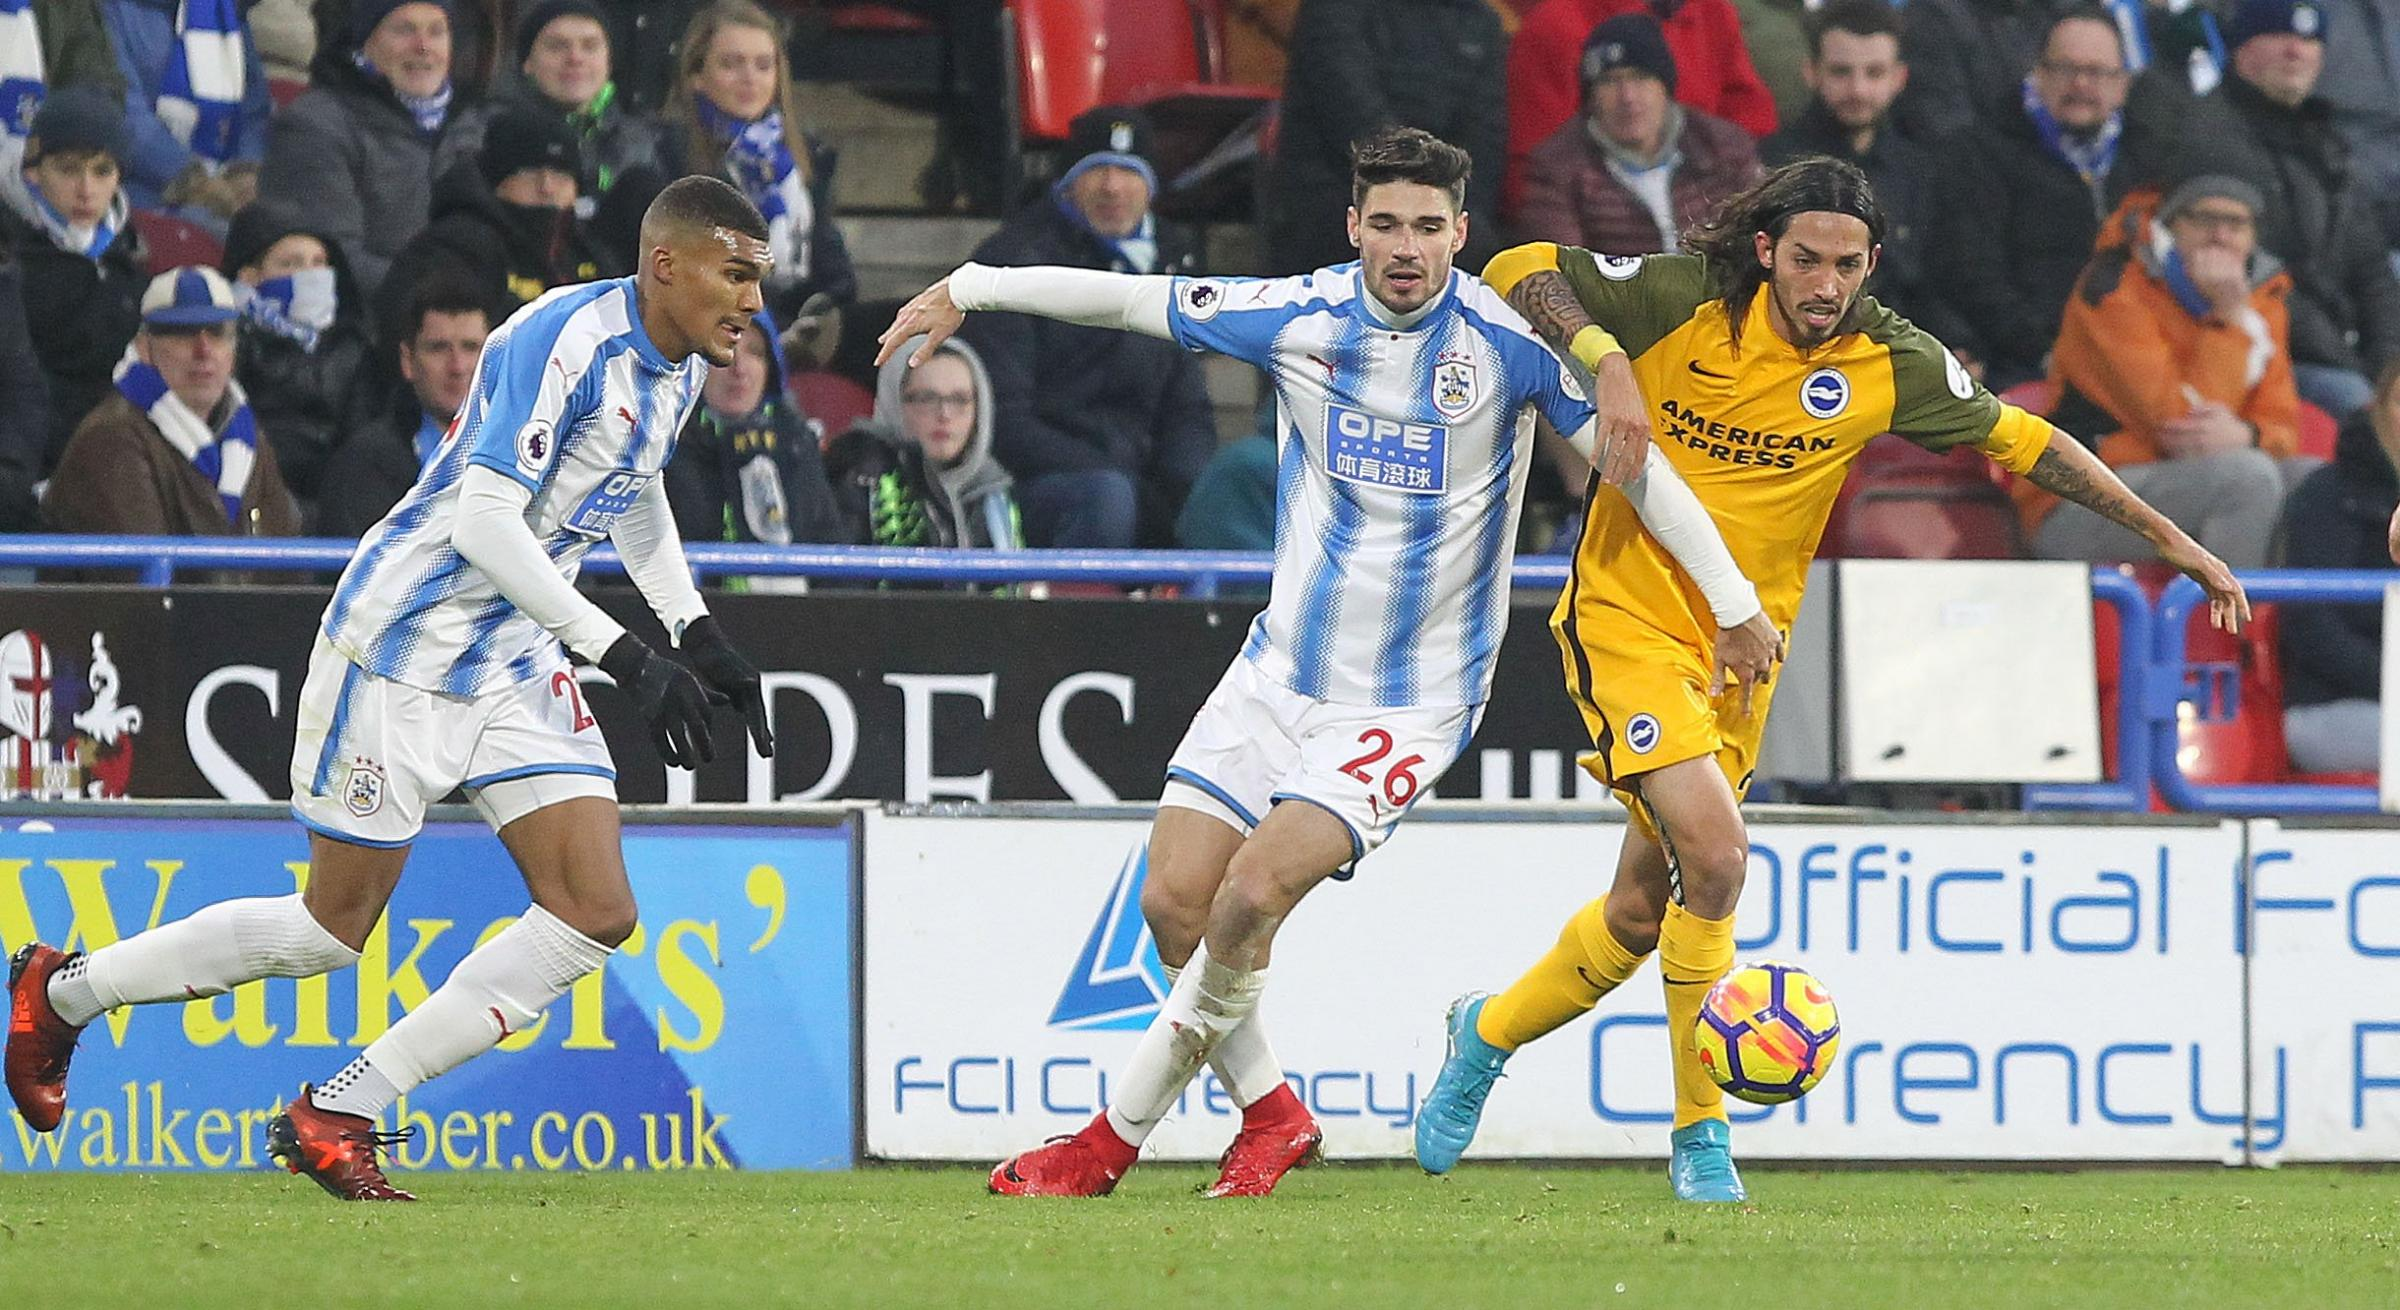 Huddersfield Town on track to avoid relegation